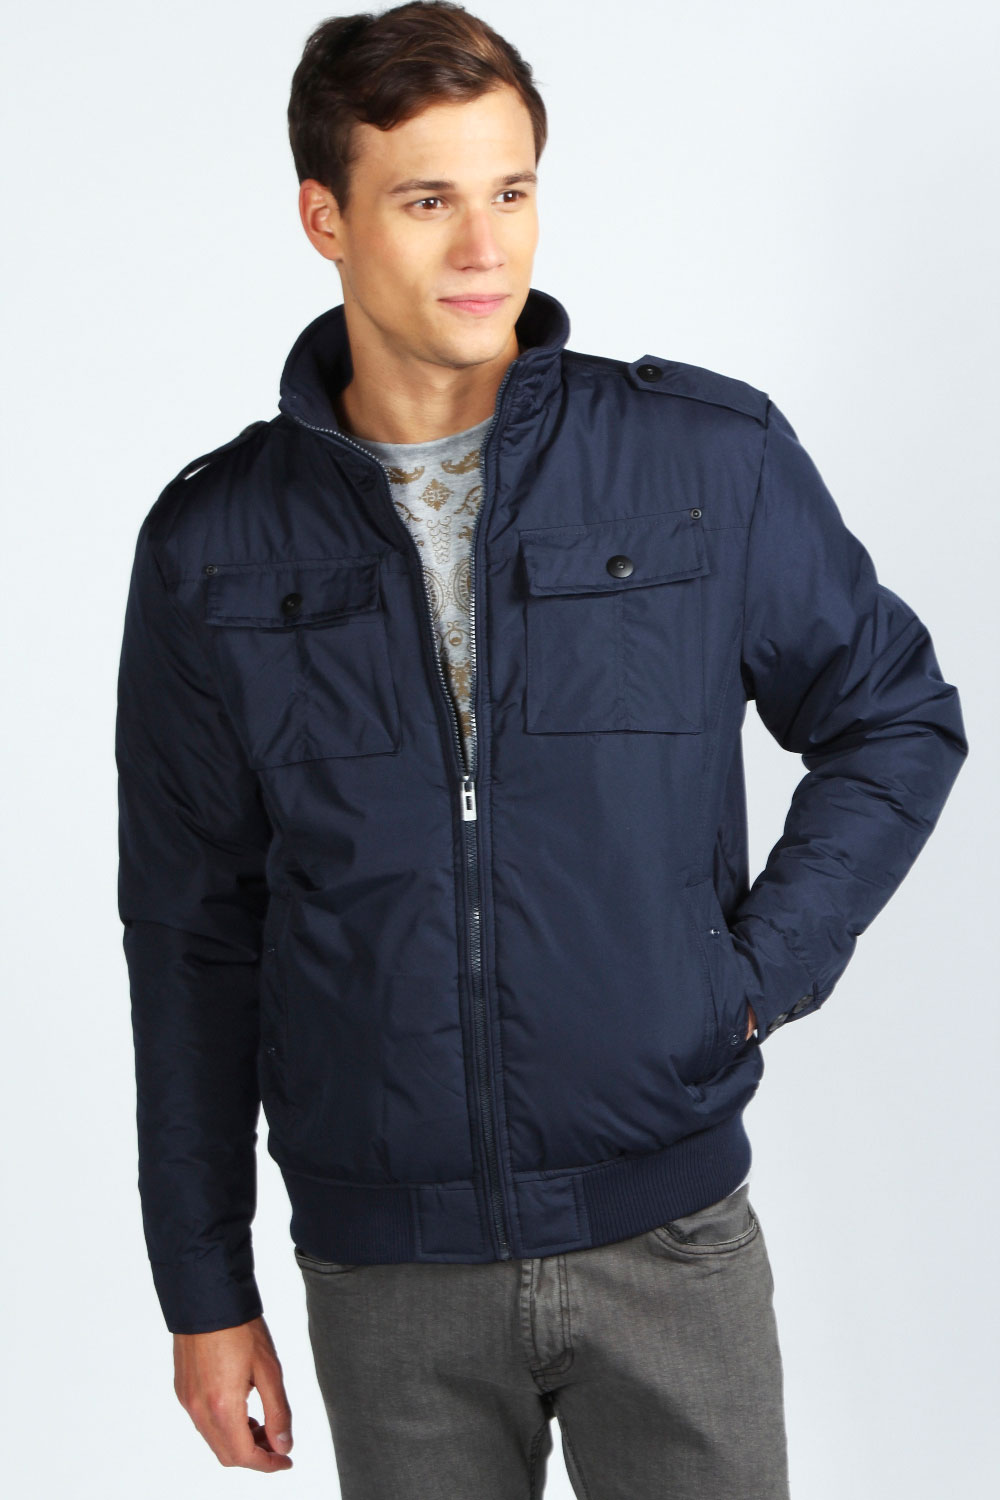 Boohoo-Mens-Nylon-Chest-Pocket-Bomber-Jacket-In-Navy-Blue